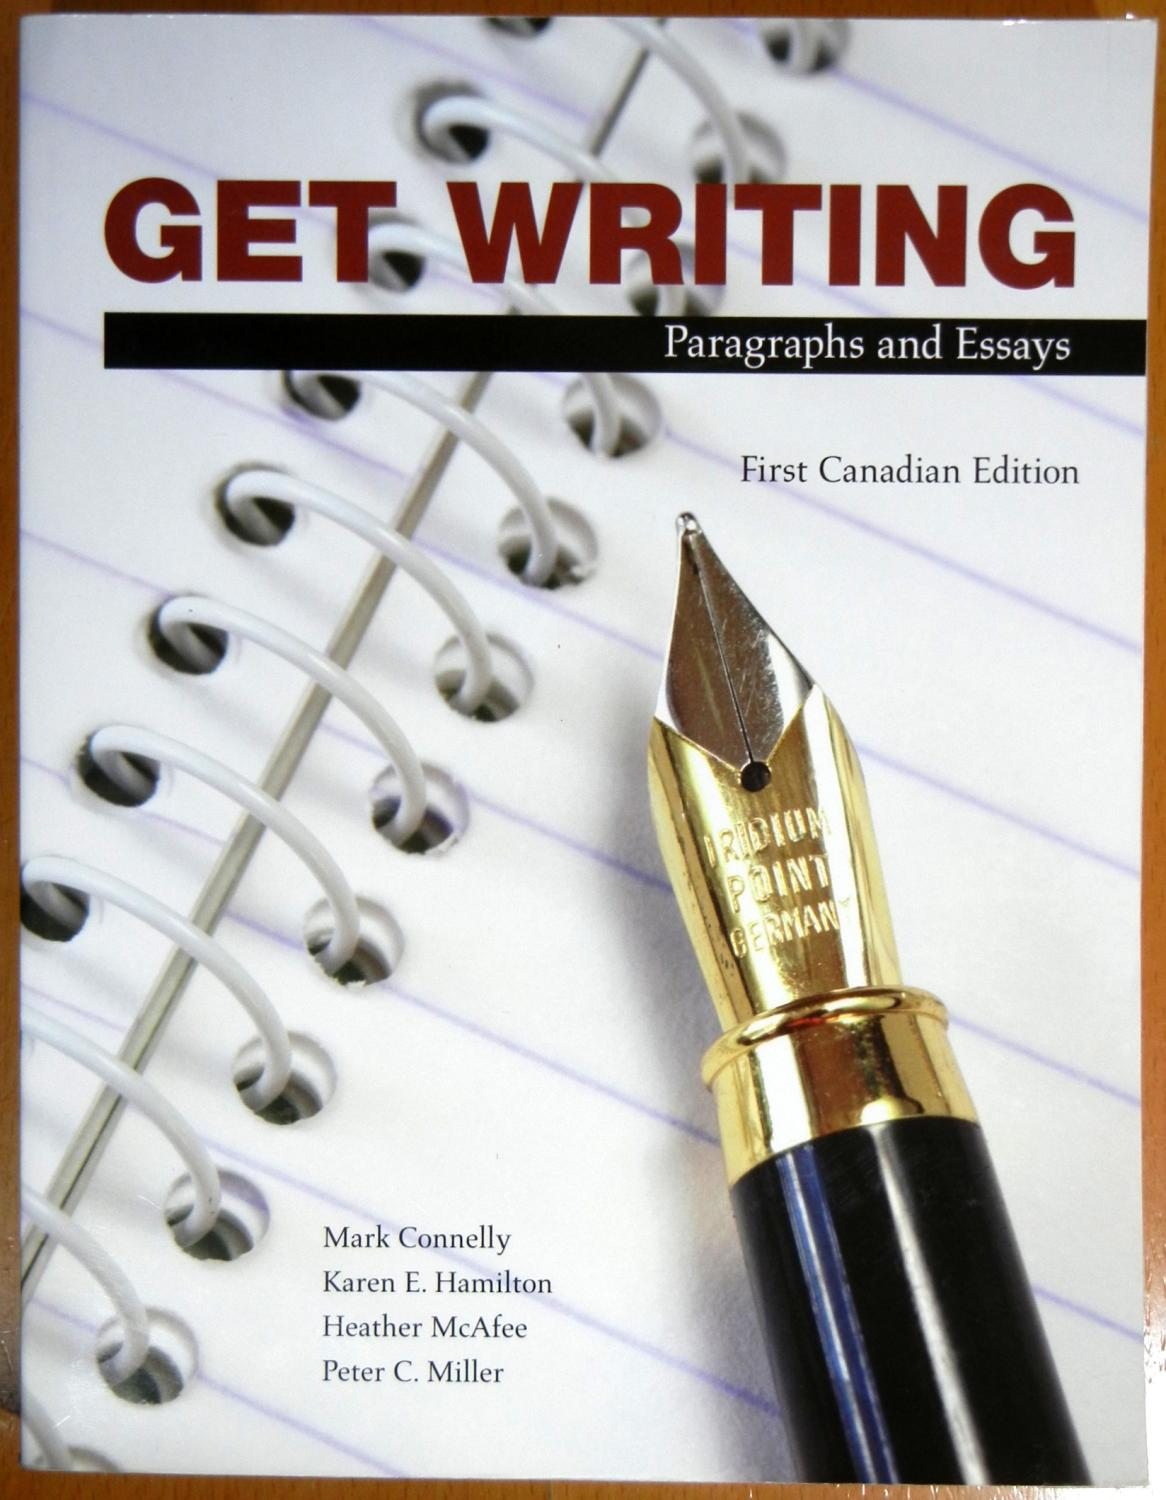 the writers world paragraphs and essays 3rd edition online Find helpful customer reviews and review ratings for the writer's world: paragraphs and essays (3rd edition) at amazoncom read honest and unbiased product reviews.